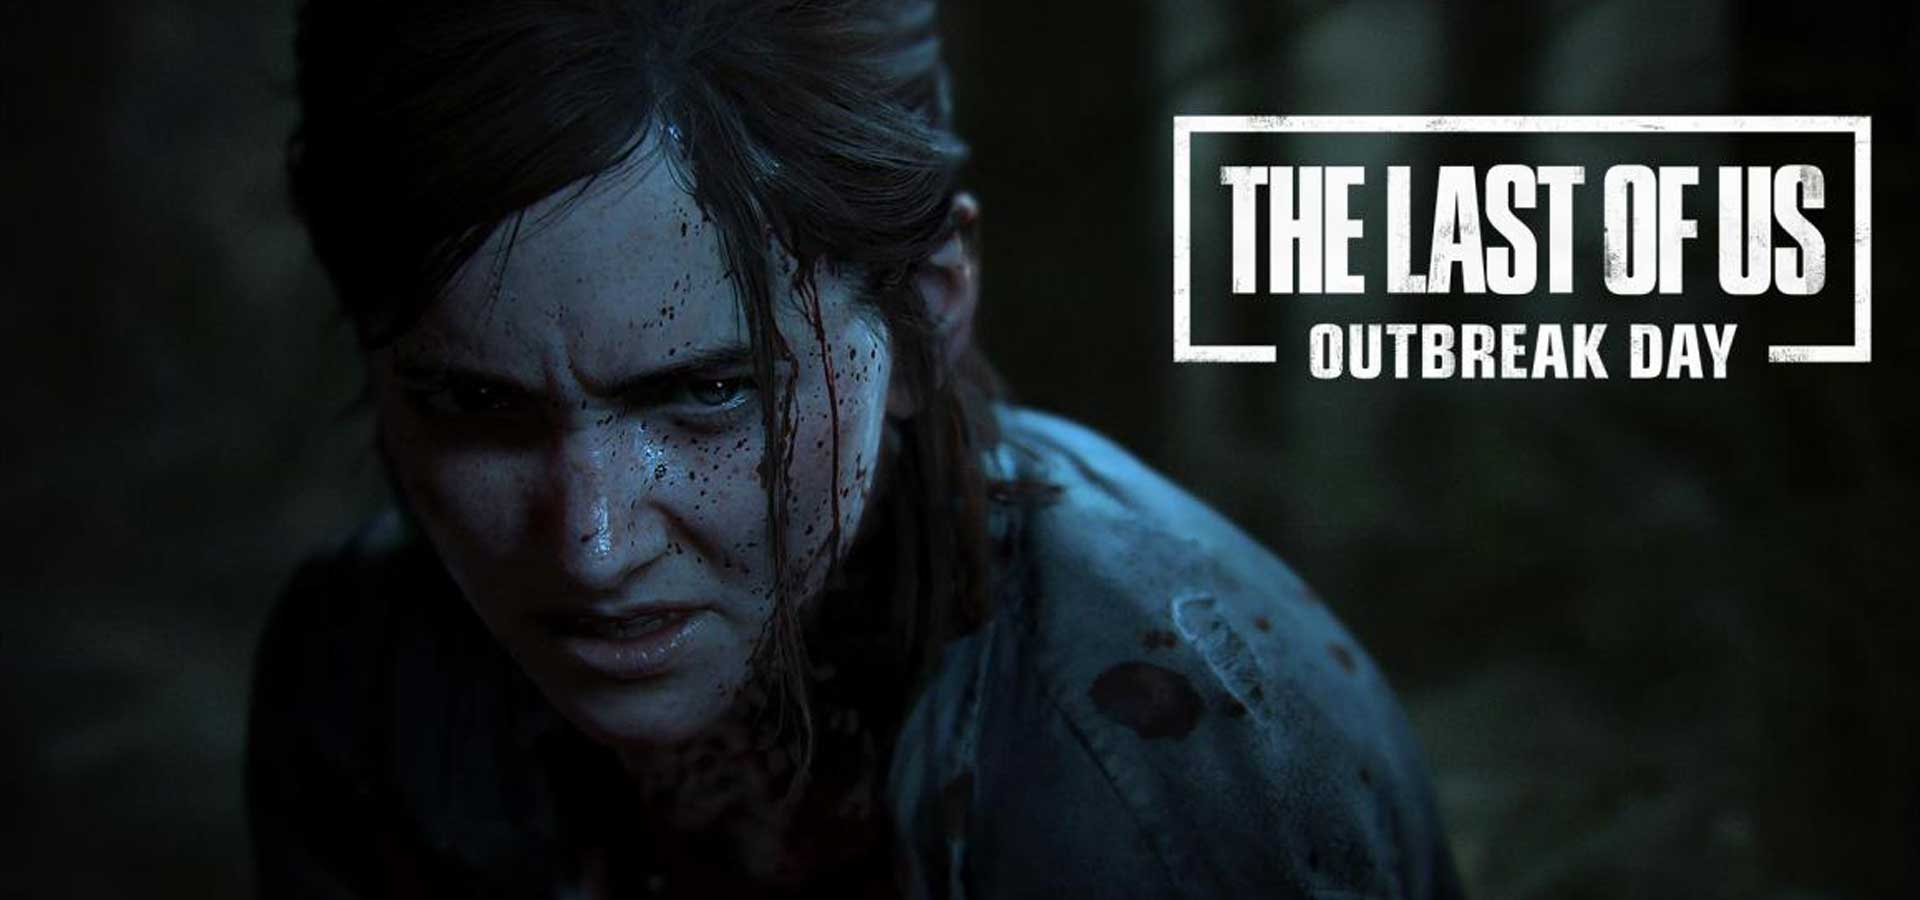 Naughty Dog remplace l'Outbreak Day par The Last Of Us Day